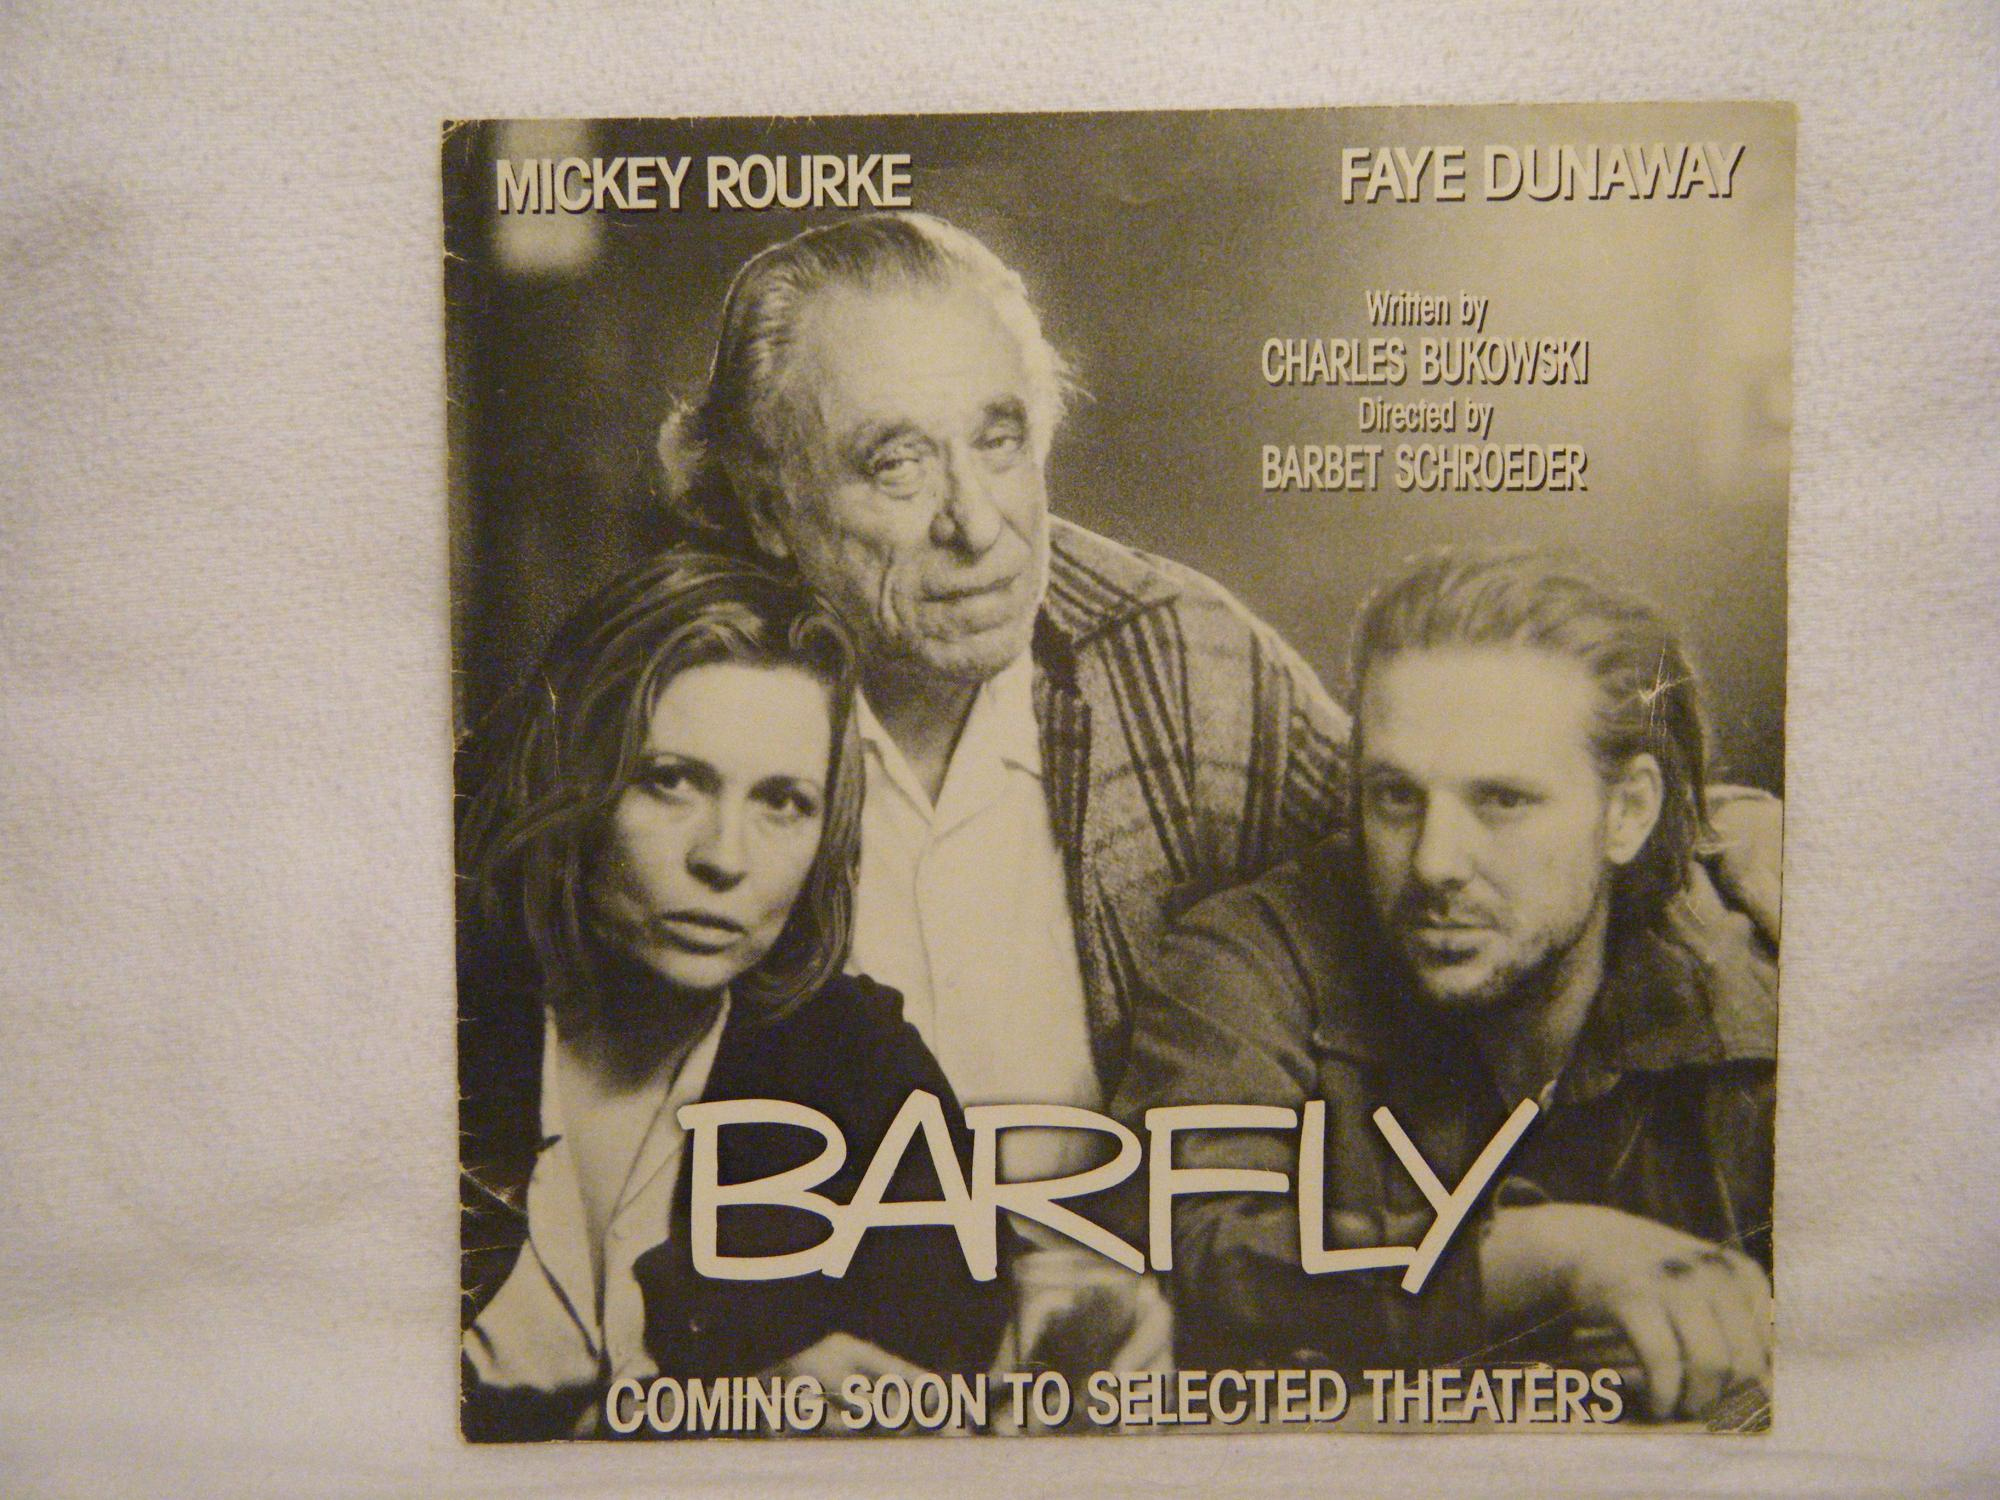 Barfly Movie Poster Bukowski, Charles Very Good Softcover This is a single sheet movie poster for the movie Barfly. It is a square poster that folds down in quarters into an about 8  square booklet. It featur